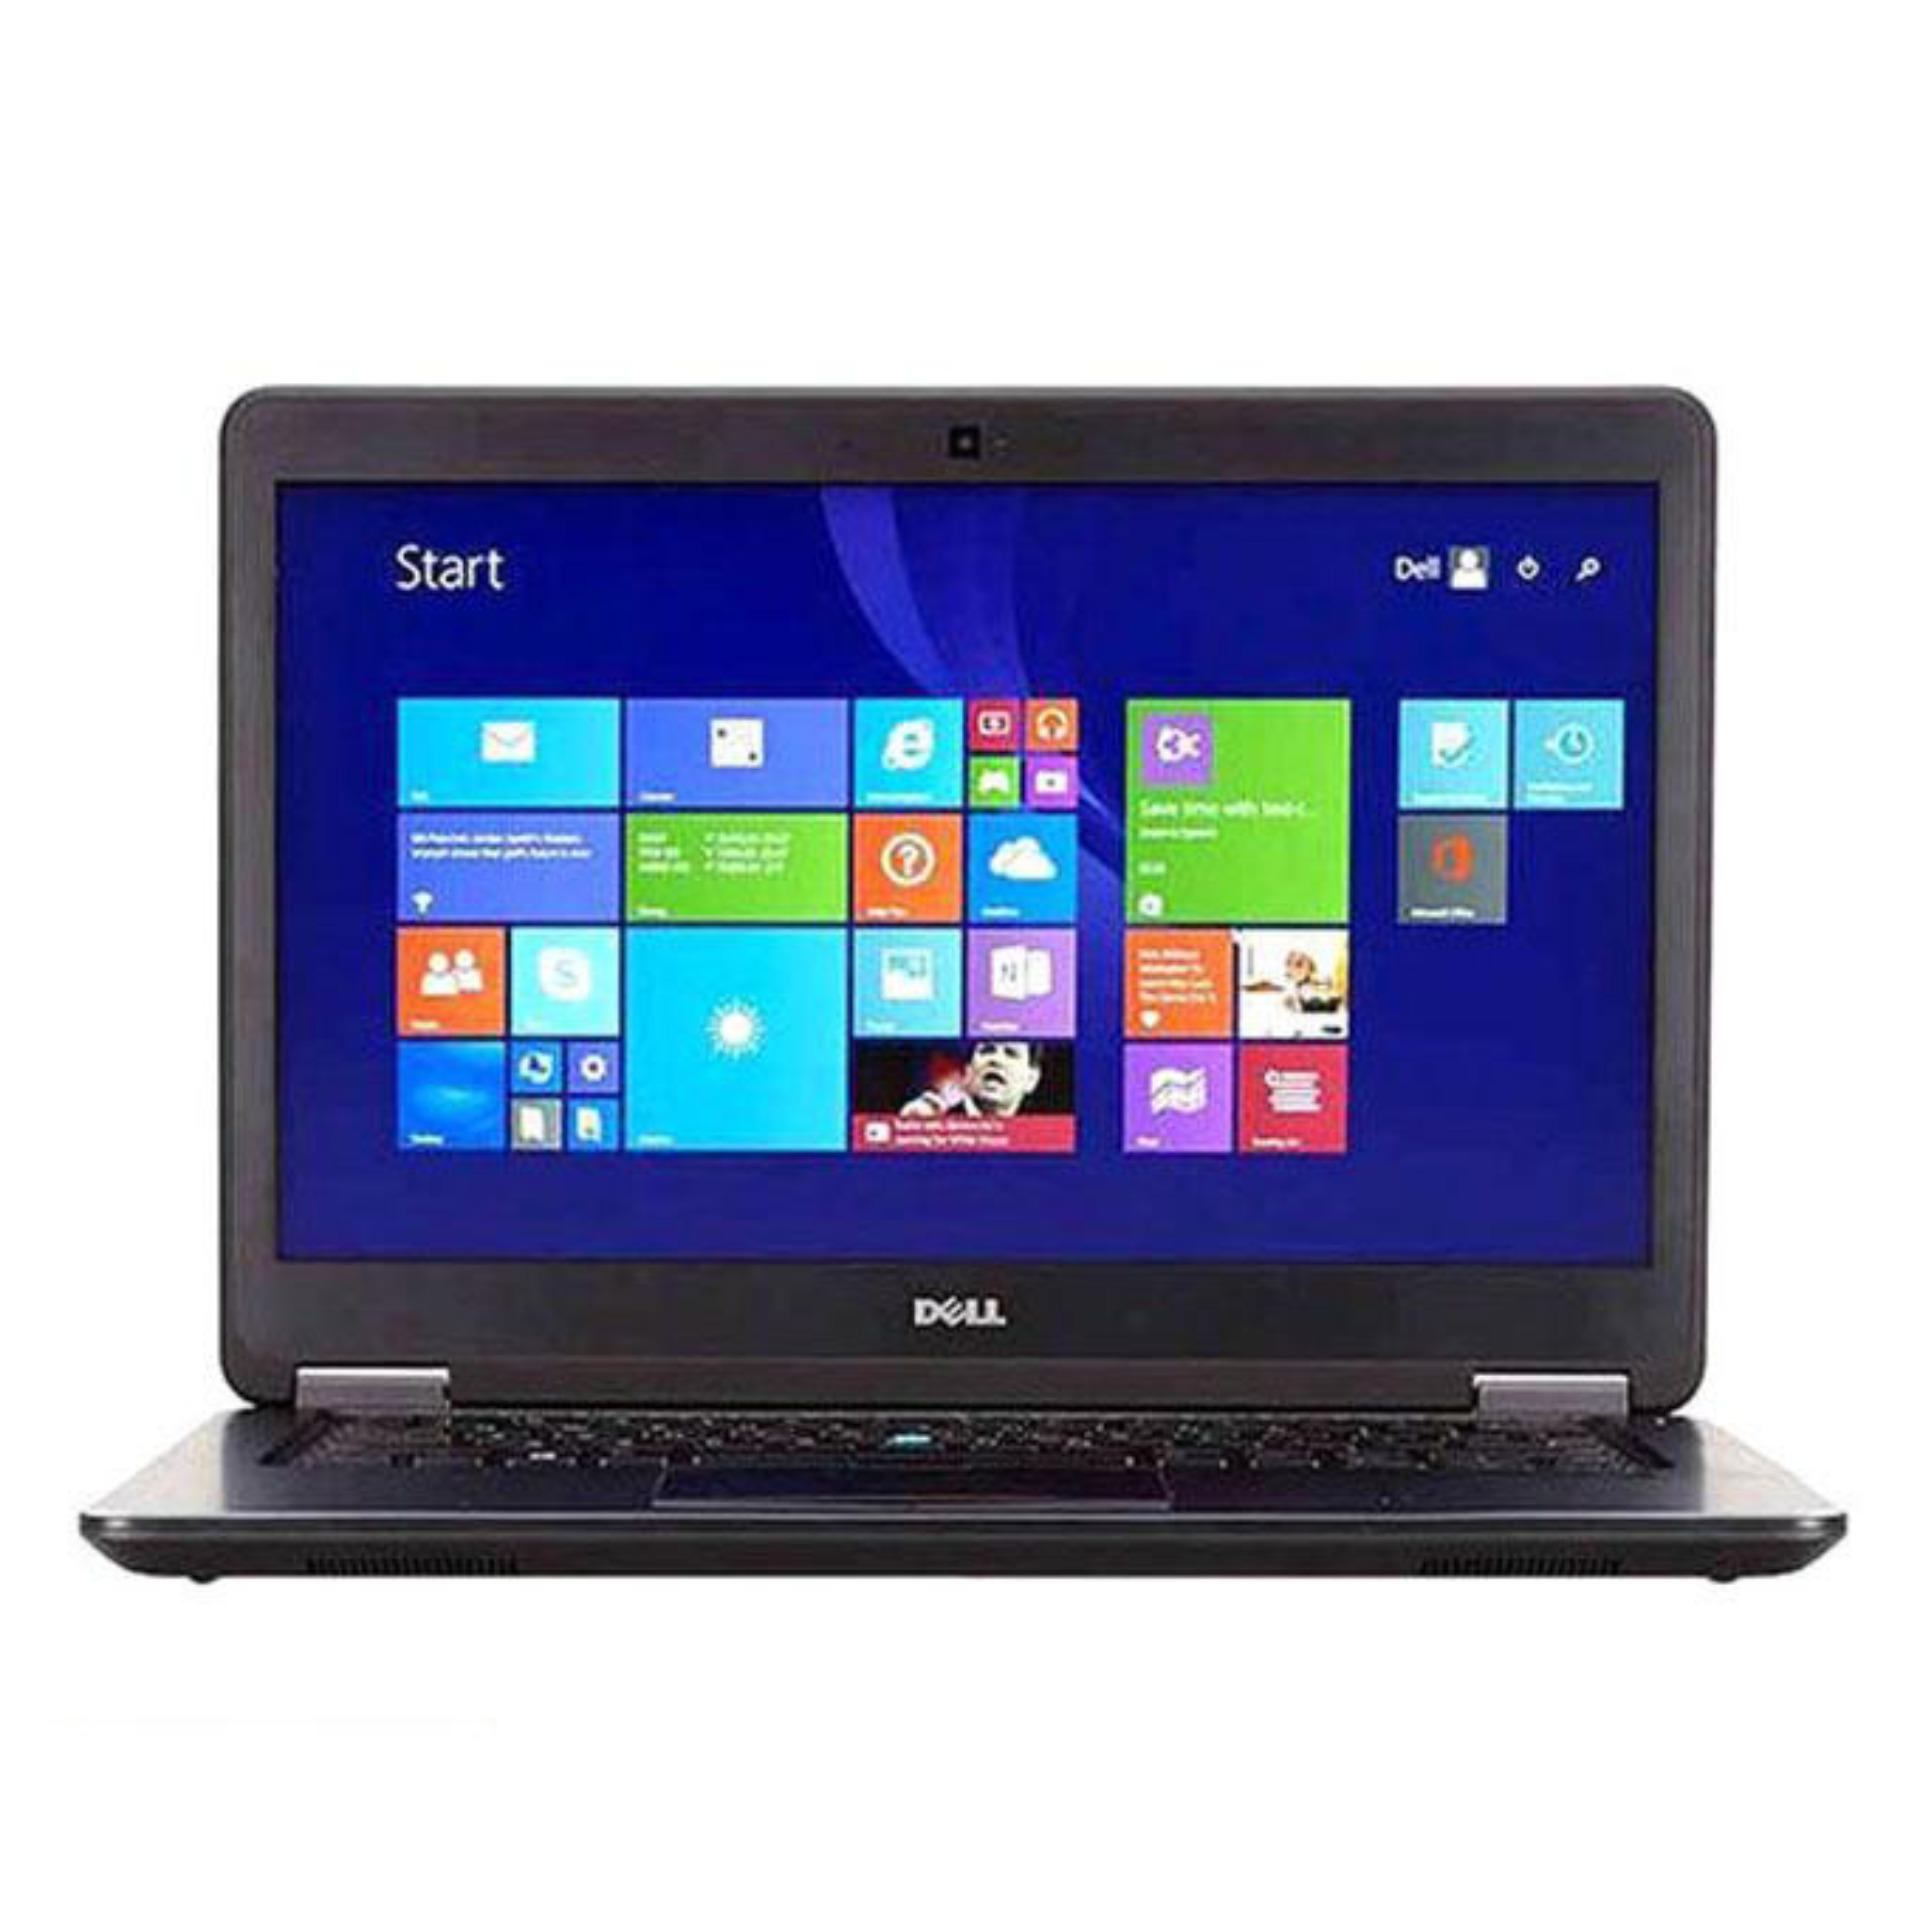 Dell Bangladesh Online Shop Store At Charger Adaptor Original Laptop Notebook Hp 195v 231a Pin Latitude E7450 Cto Core I7 23ghz 8 Gb 256gb Ssd